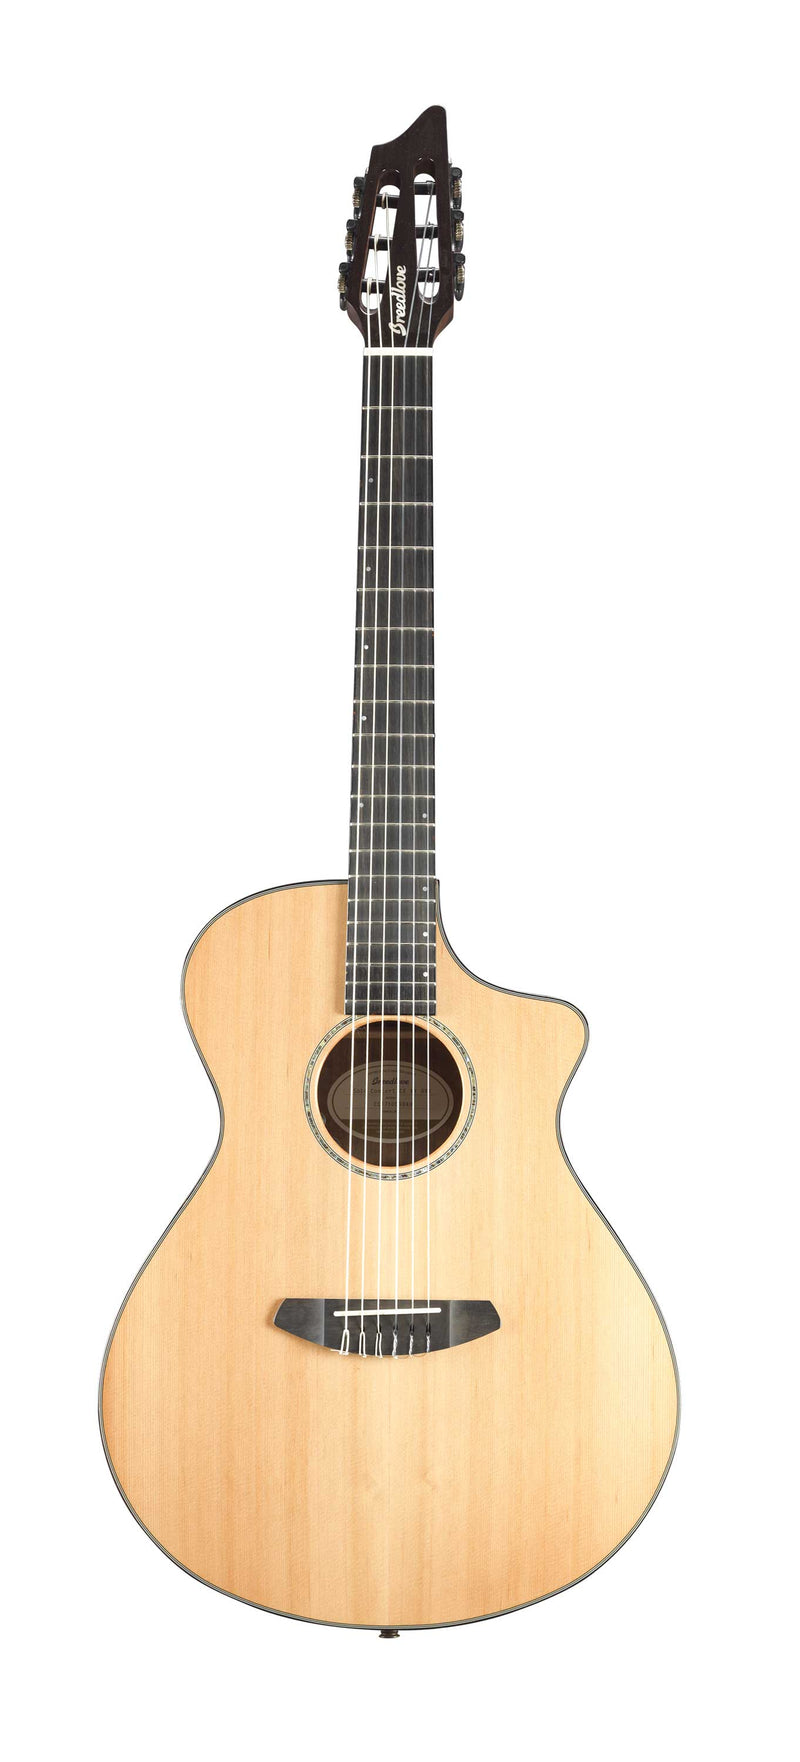 breedlove solo concert ce nylon string red cedar mahogany acoustic electric guitar includes. Black Bedroom Furniture Sets. Home Design Ideas